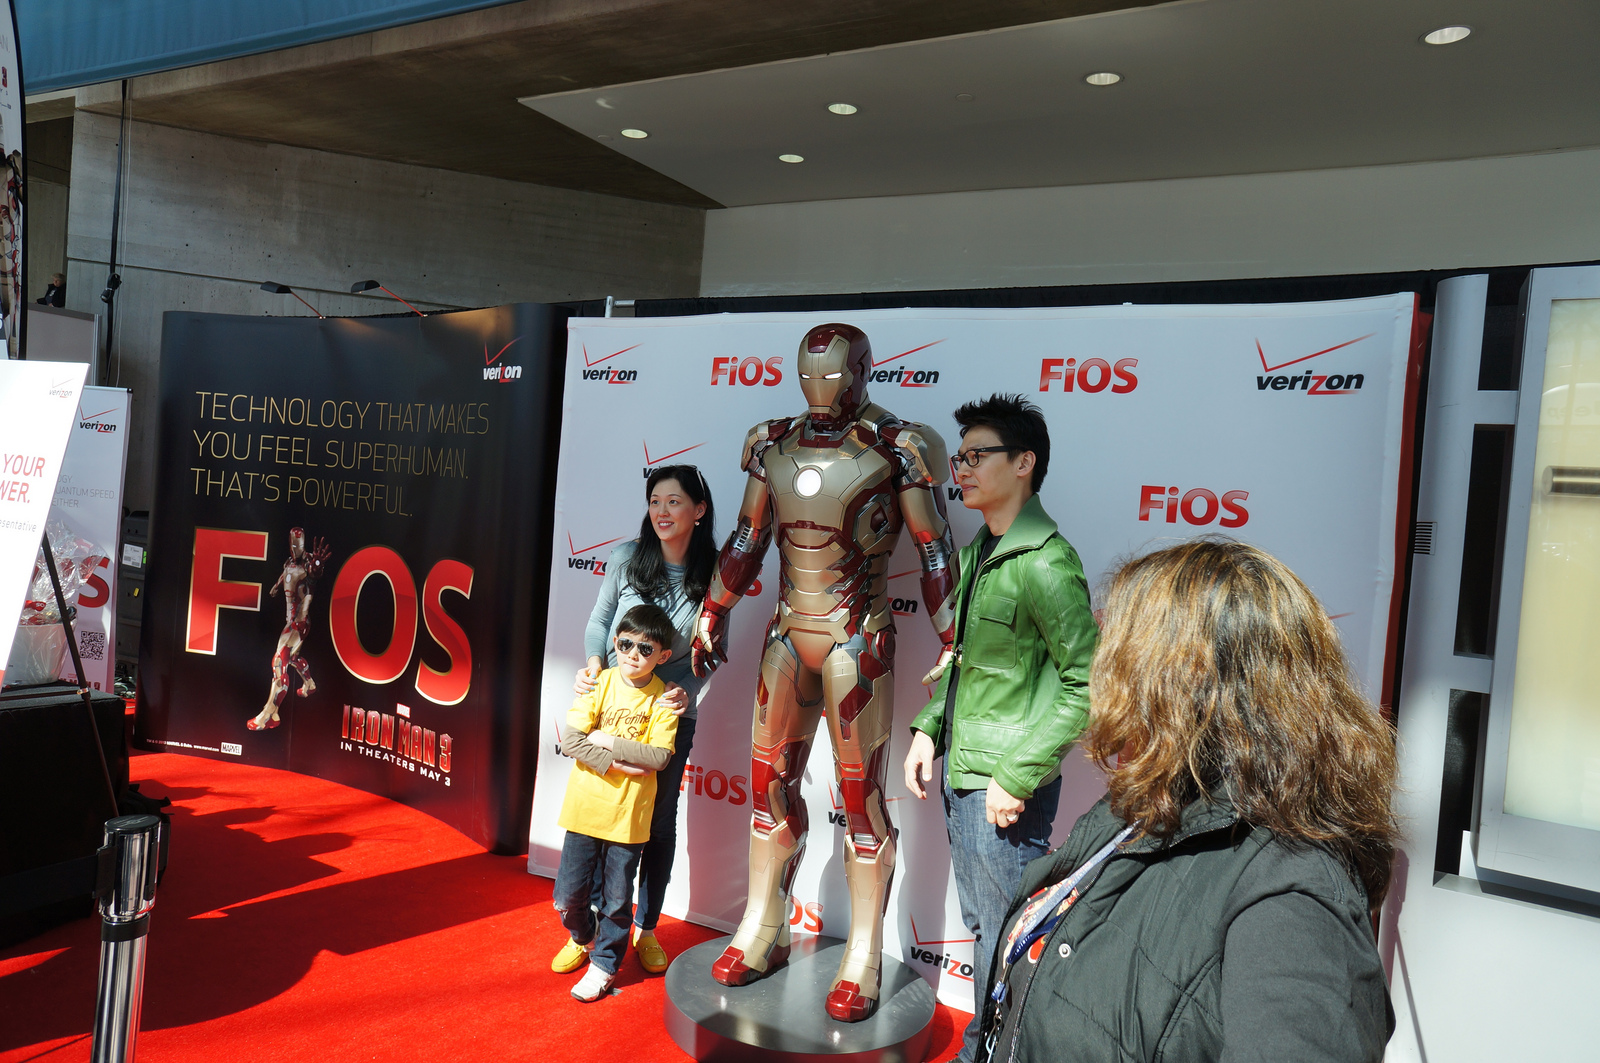 Verizon – Iron Man 3 Promotion